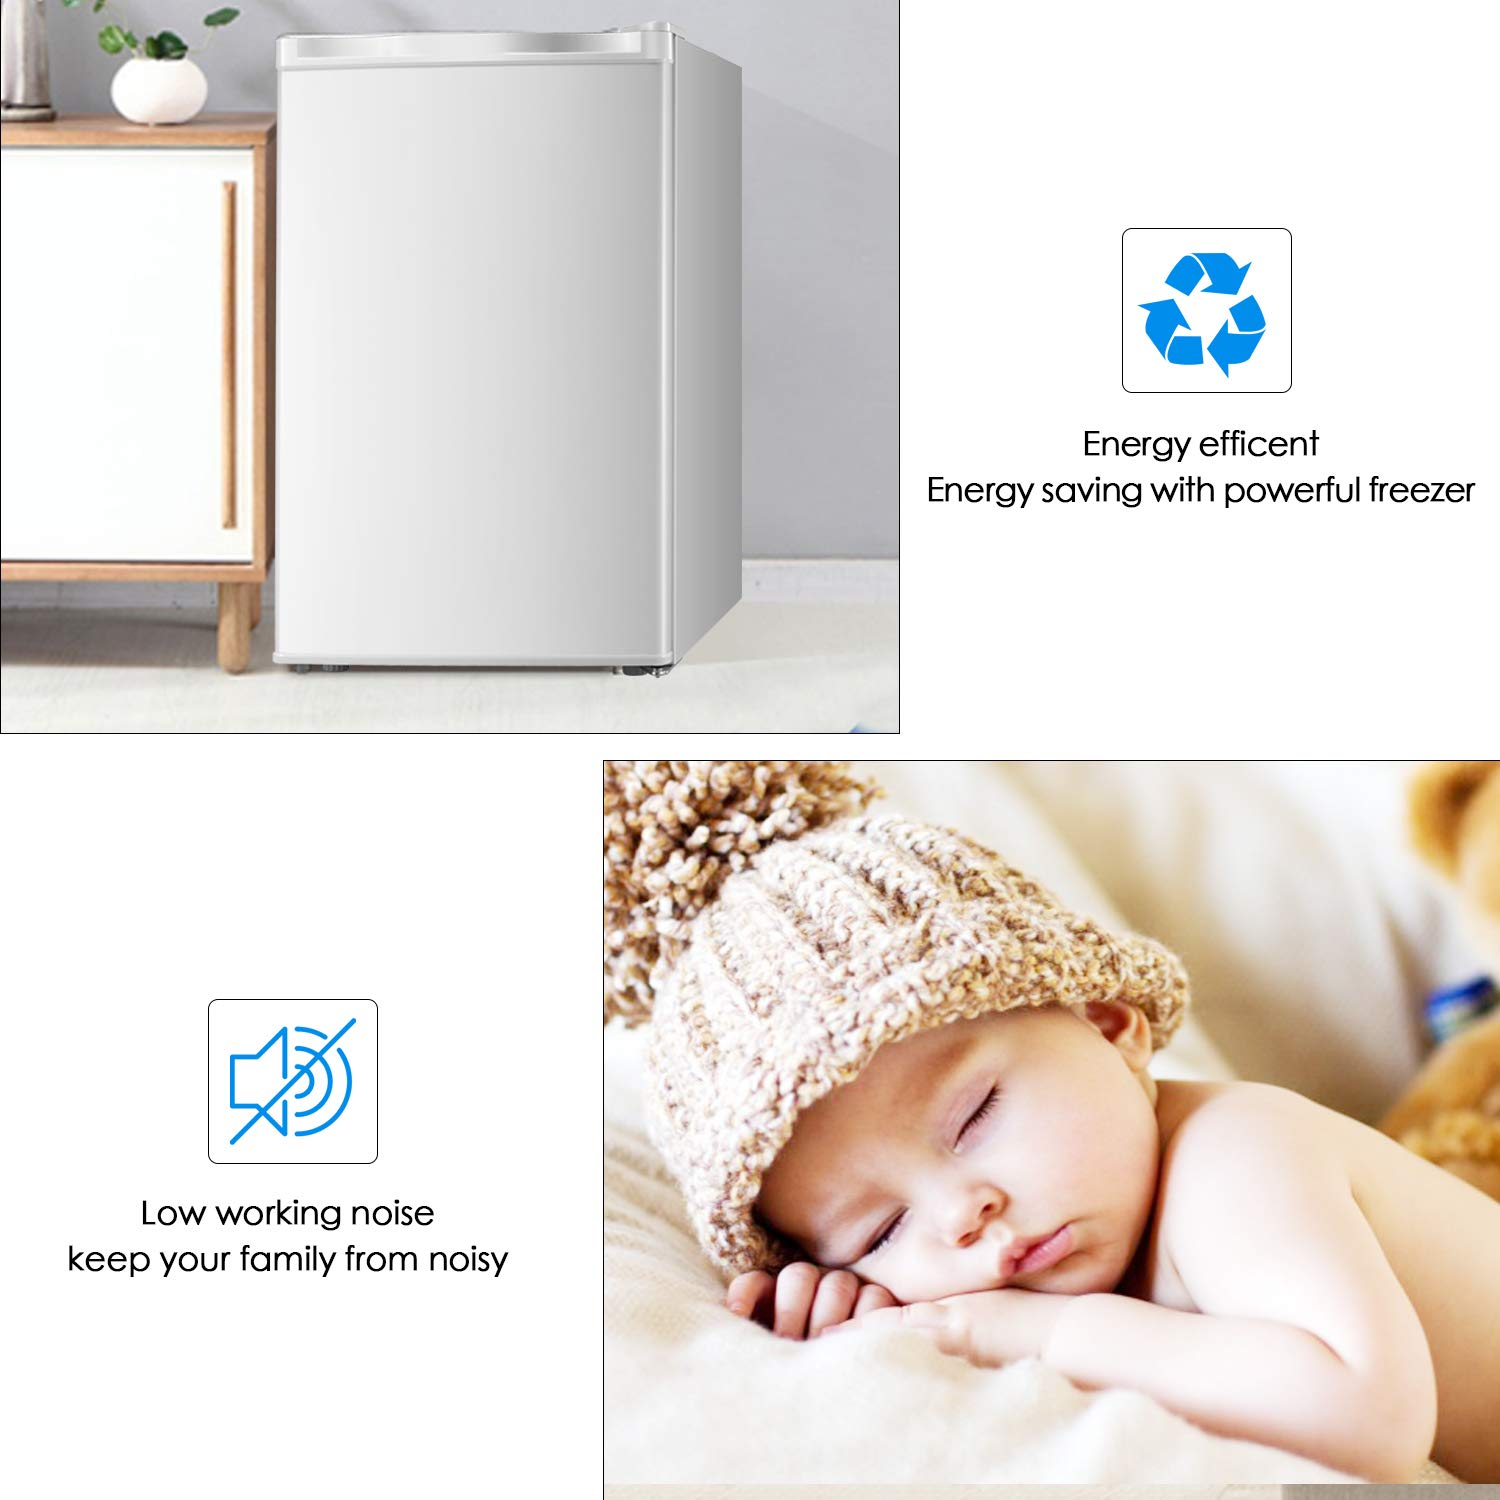 Upright Freezer Lock 1.1 Cubic Feet with Reversible Stainless Steel Door Removable Shelves Mini Freezer Adjustable Thermostat Refrigerant for Home Office Stainless steel-1.1cu.ft